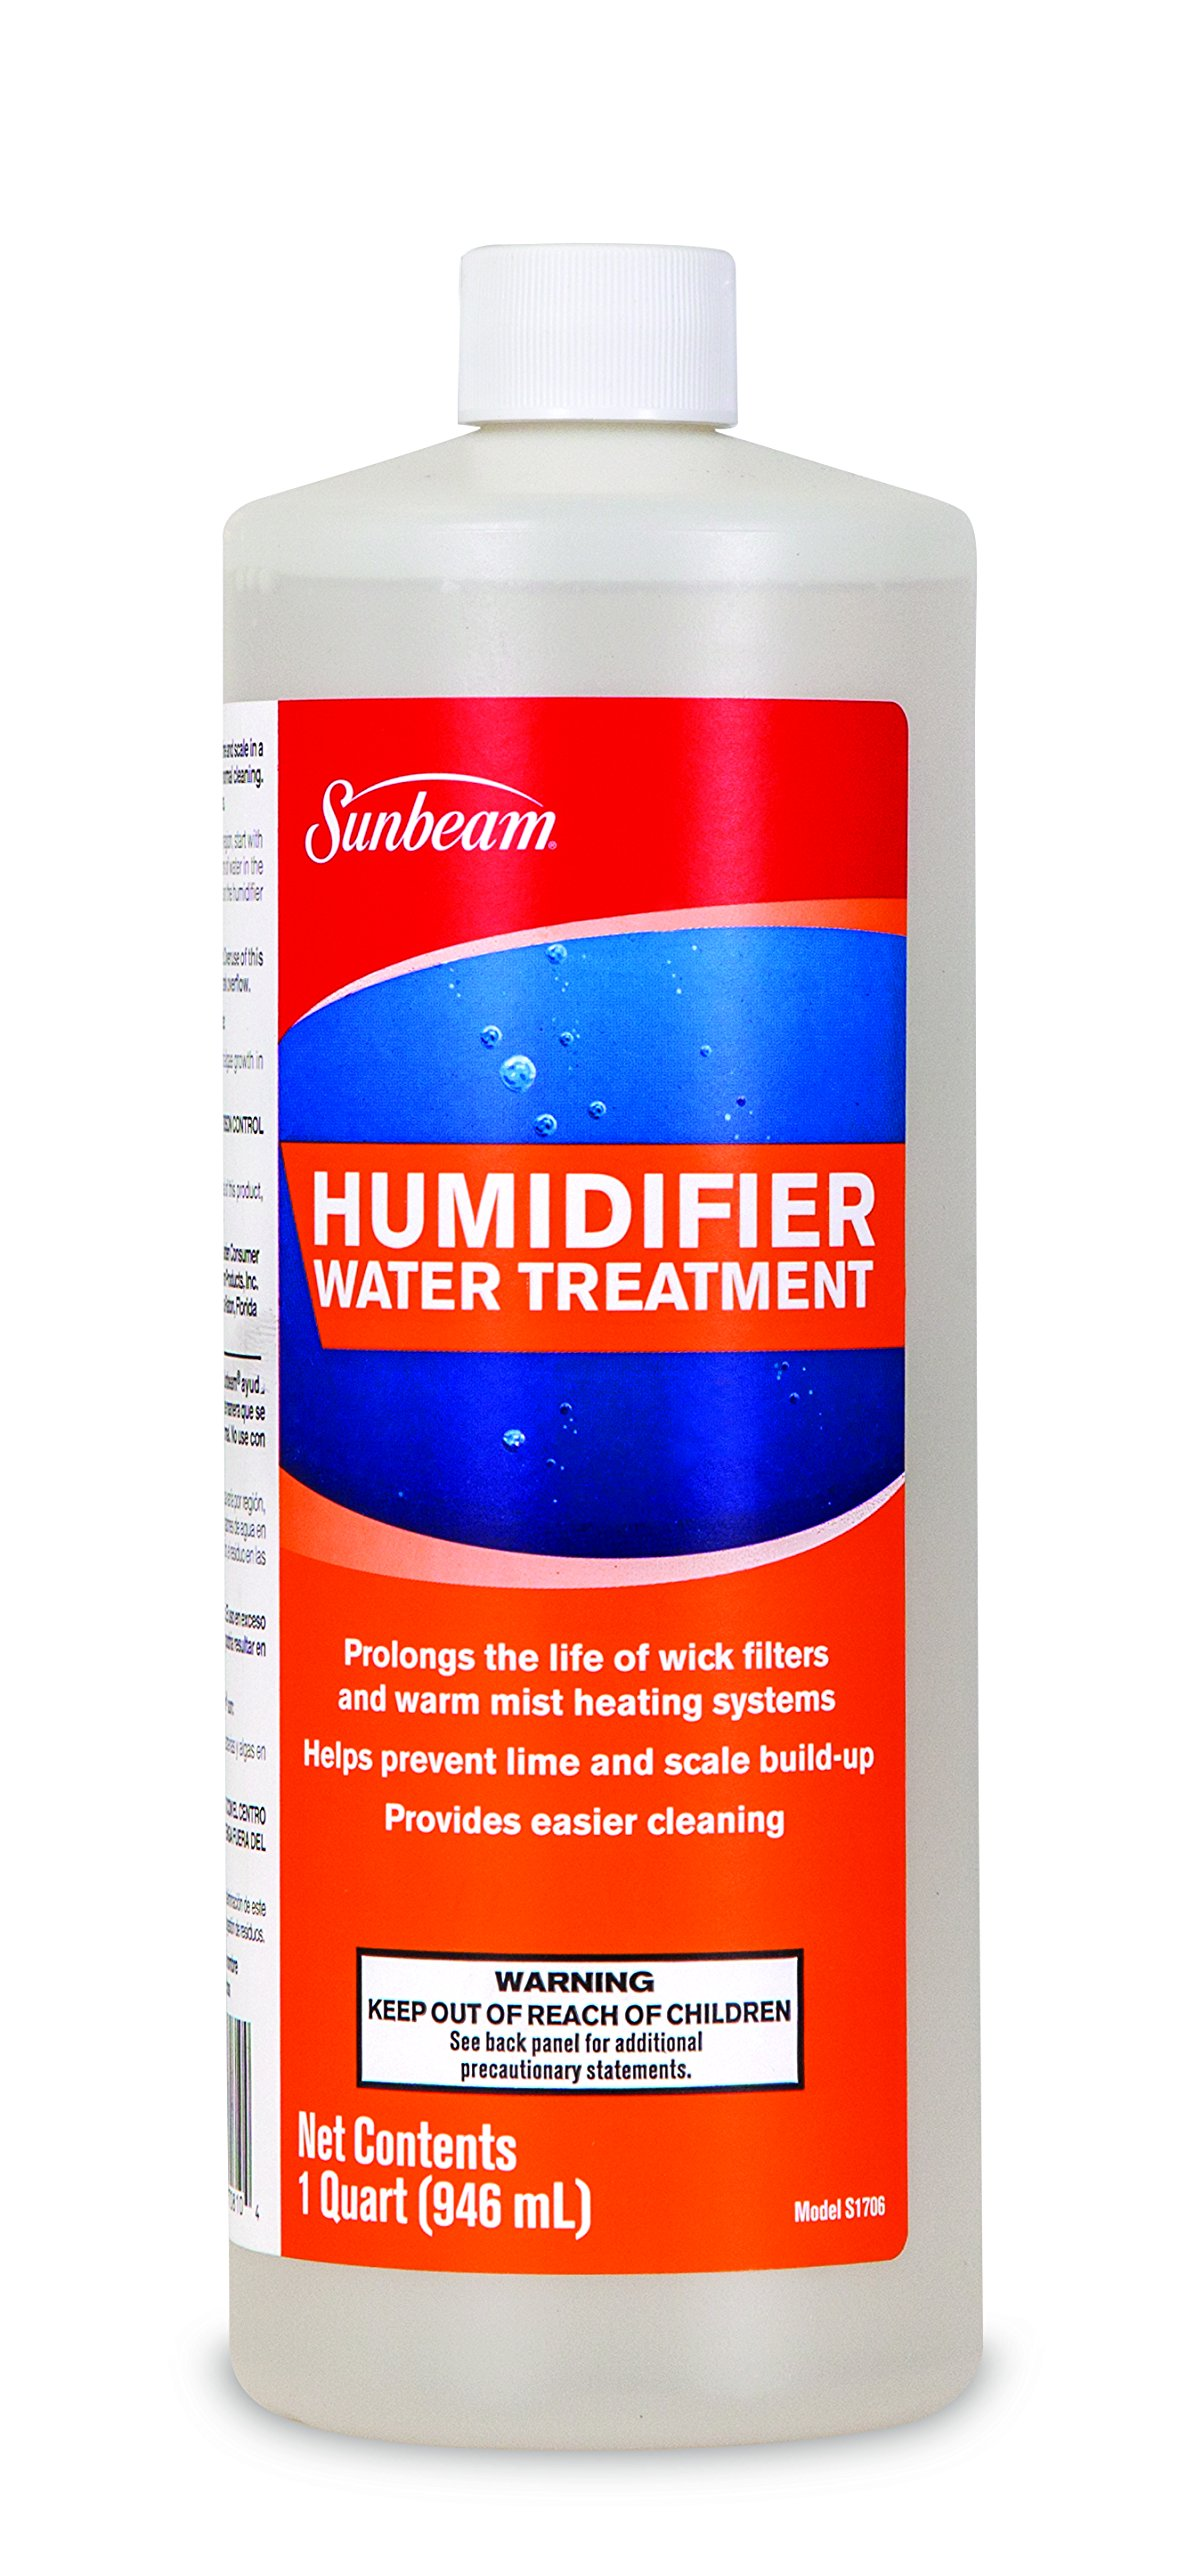 Wastewater Treatments Product : Sunbeam humidifier water treatment solution fl oz new